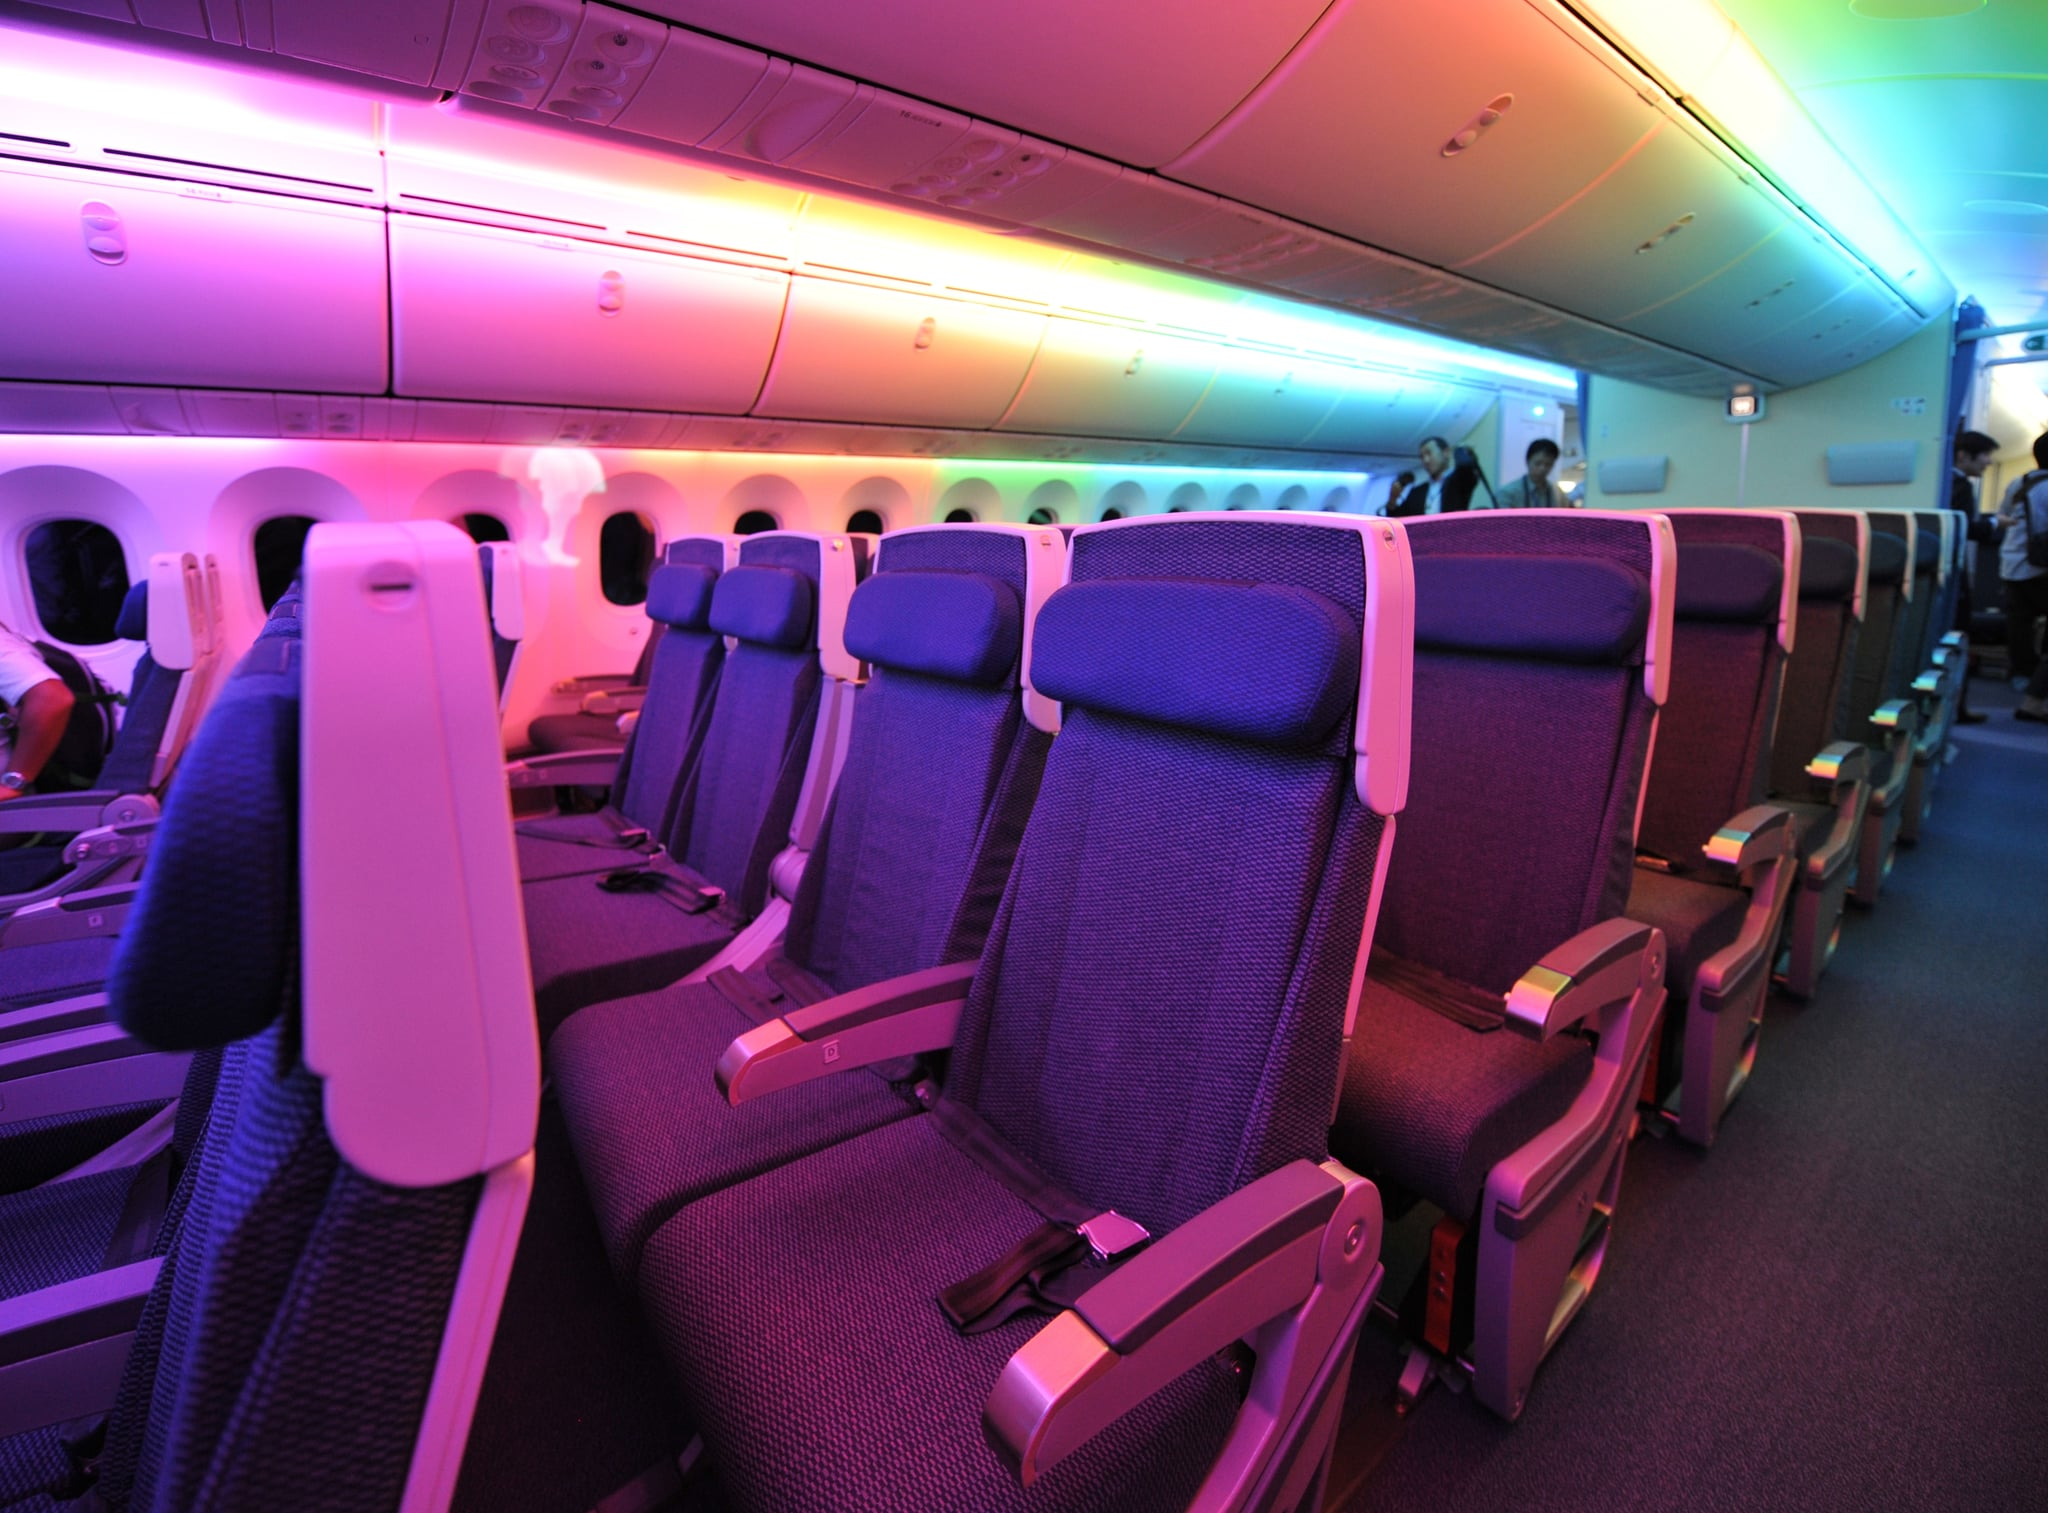 Think your airline seat is too small? So does this federal court